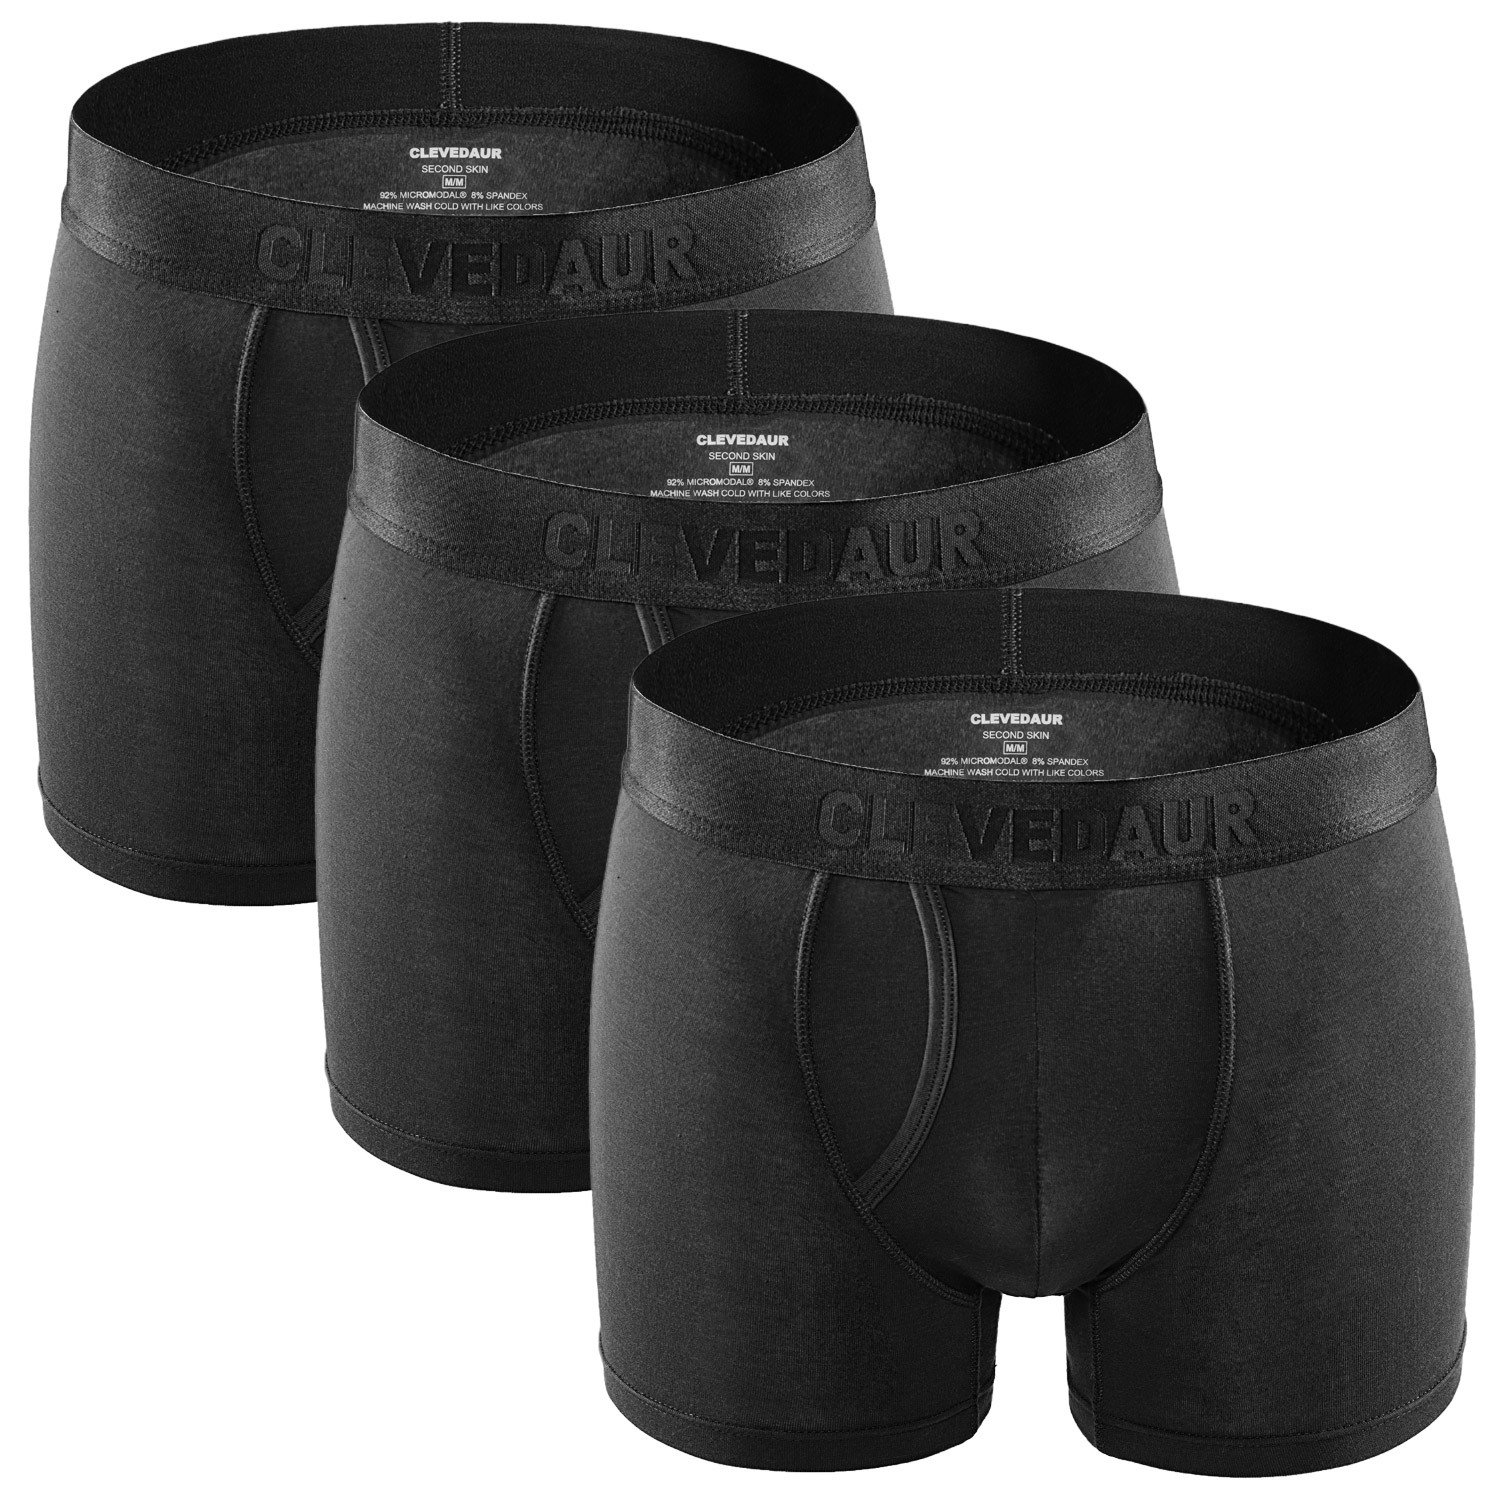 CLEVEDAUR Men's Underwear 3 Pack Lenzing Modal Trunks Underwear for Men with Fly, Black/Black/Black, XL by CLEVEDAUR